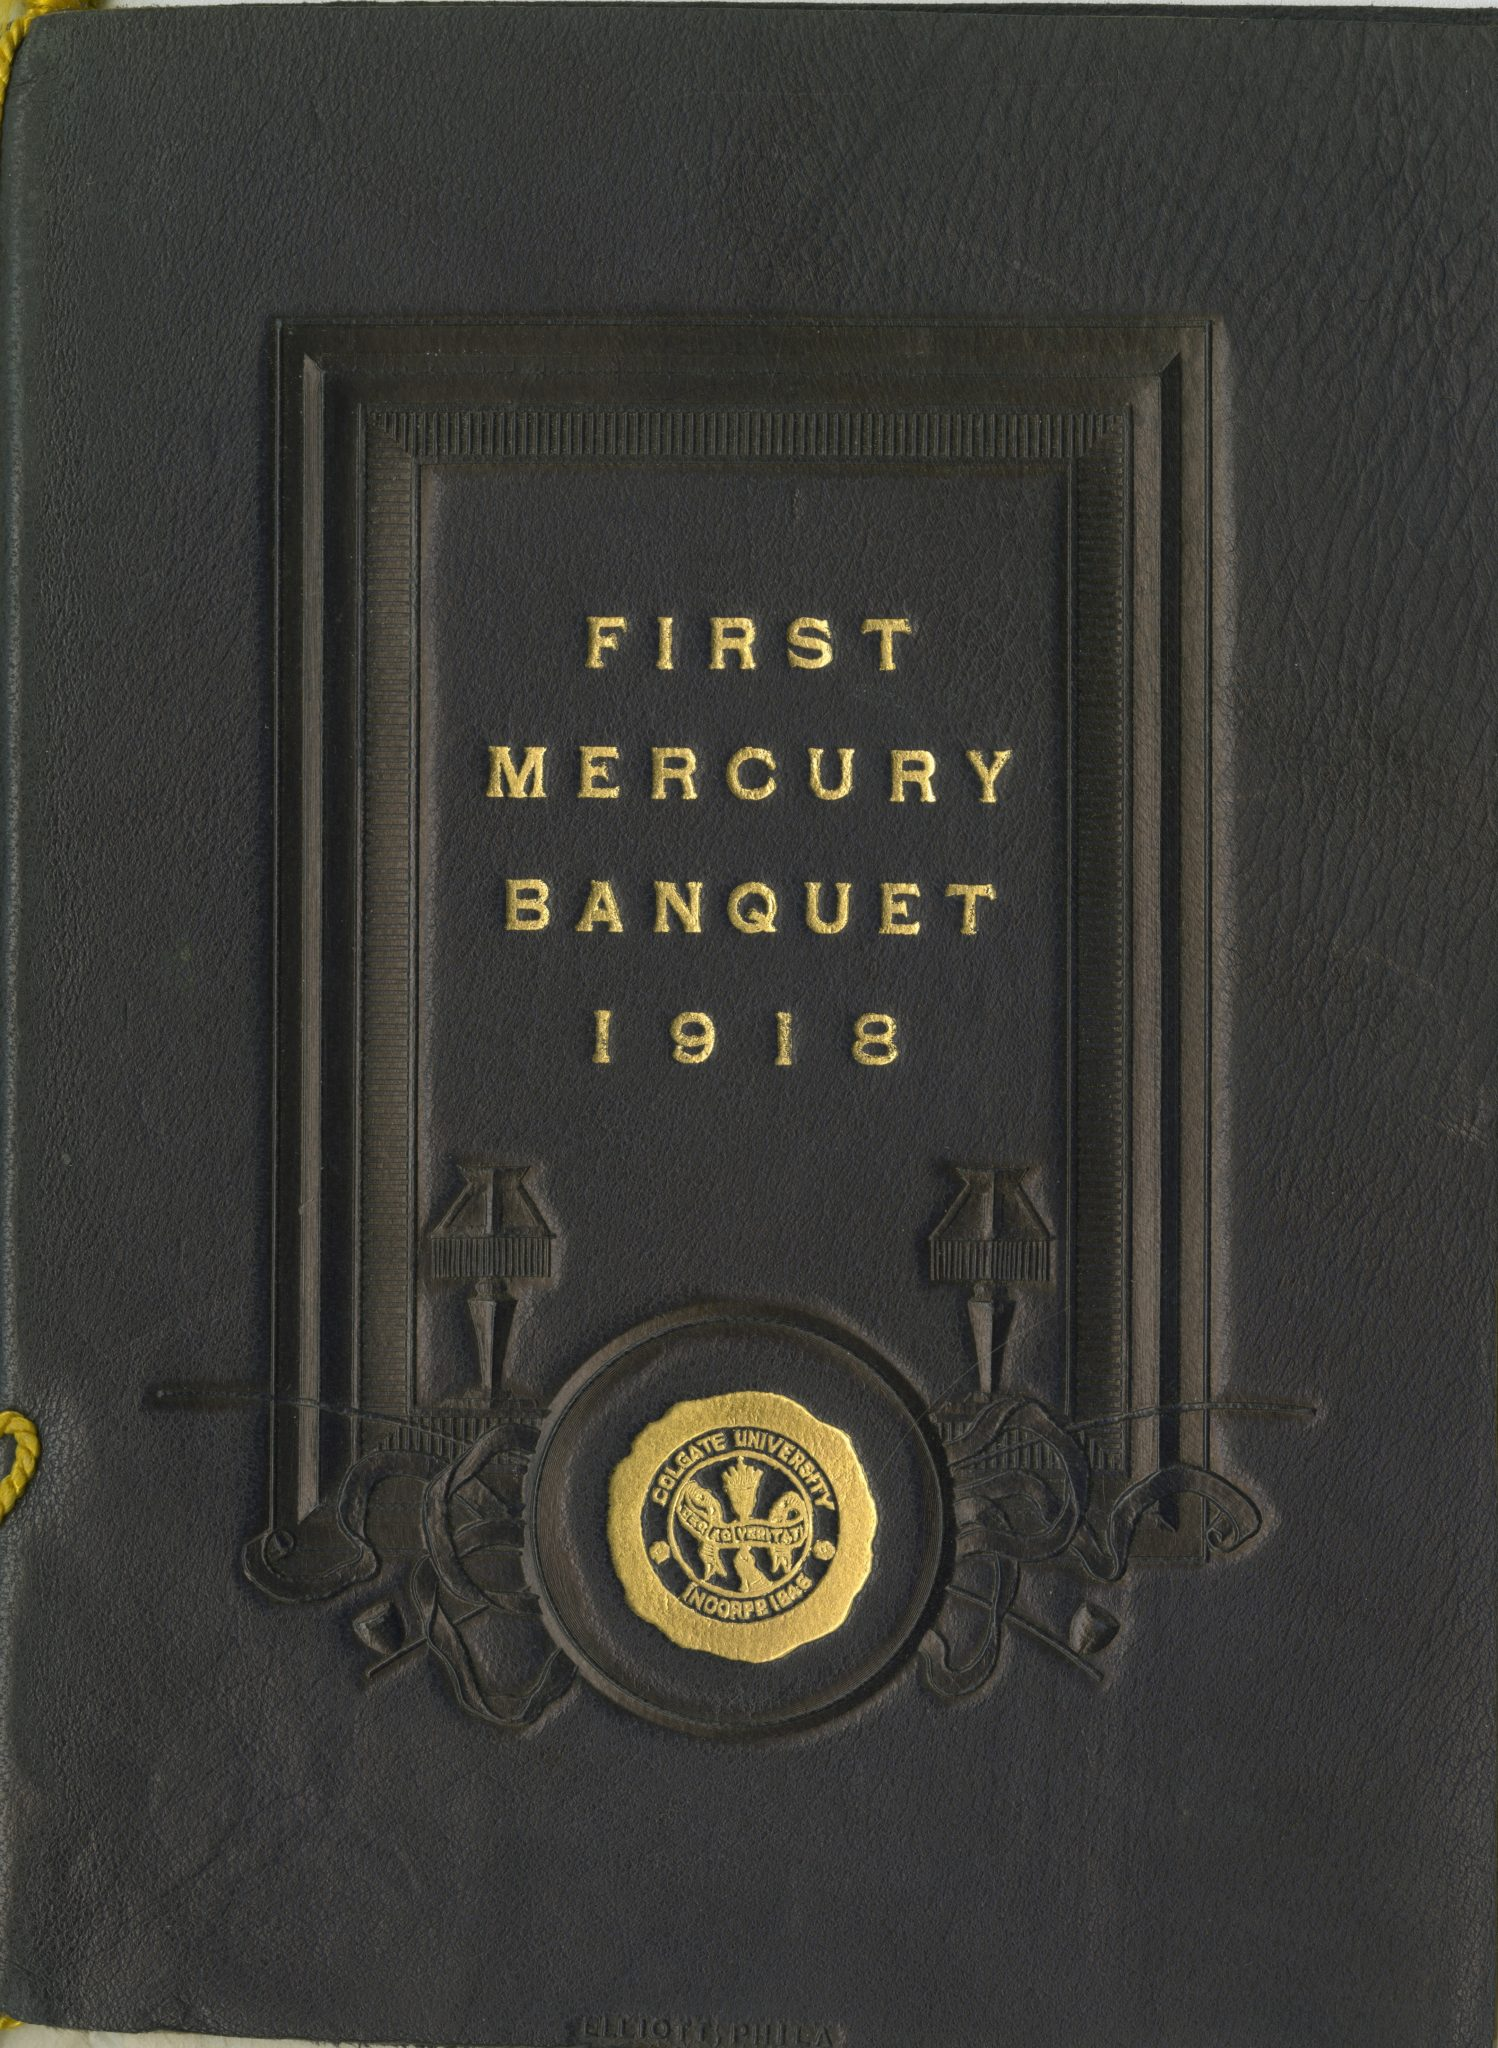 <p>Class of 1918 First Mercury Banquet program, 1914.</p><p>Mercury Collection.</p><p>Special Collections and University Archives,</p><p>Colgate University Libraries.</p>